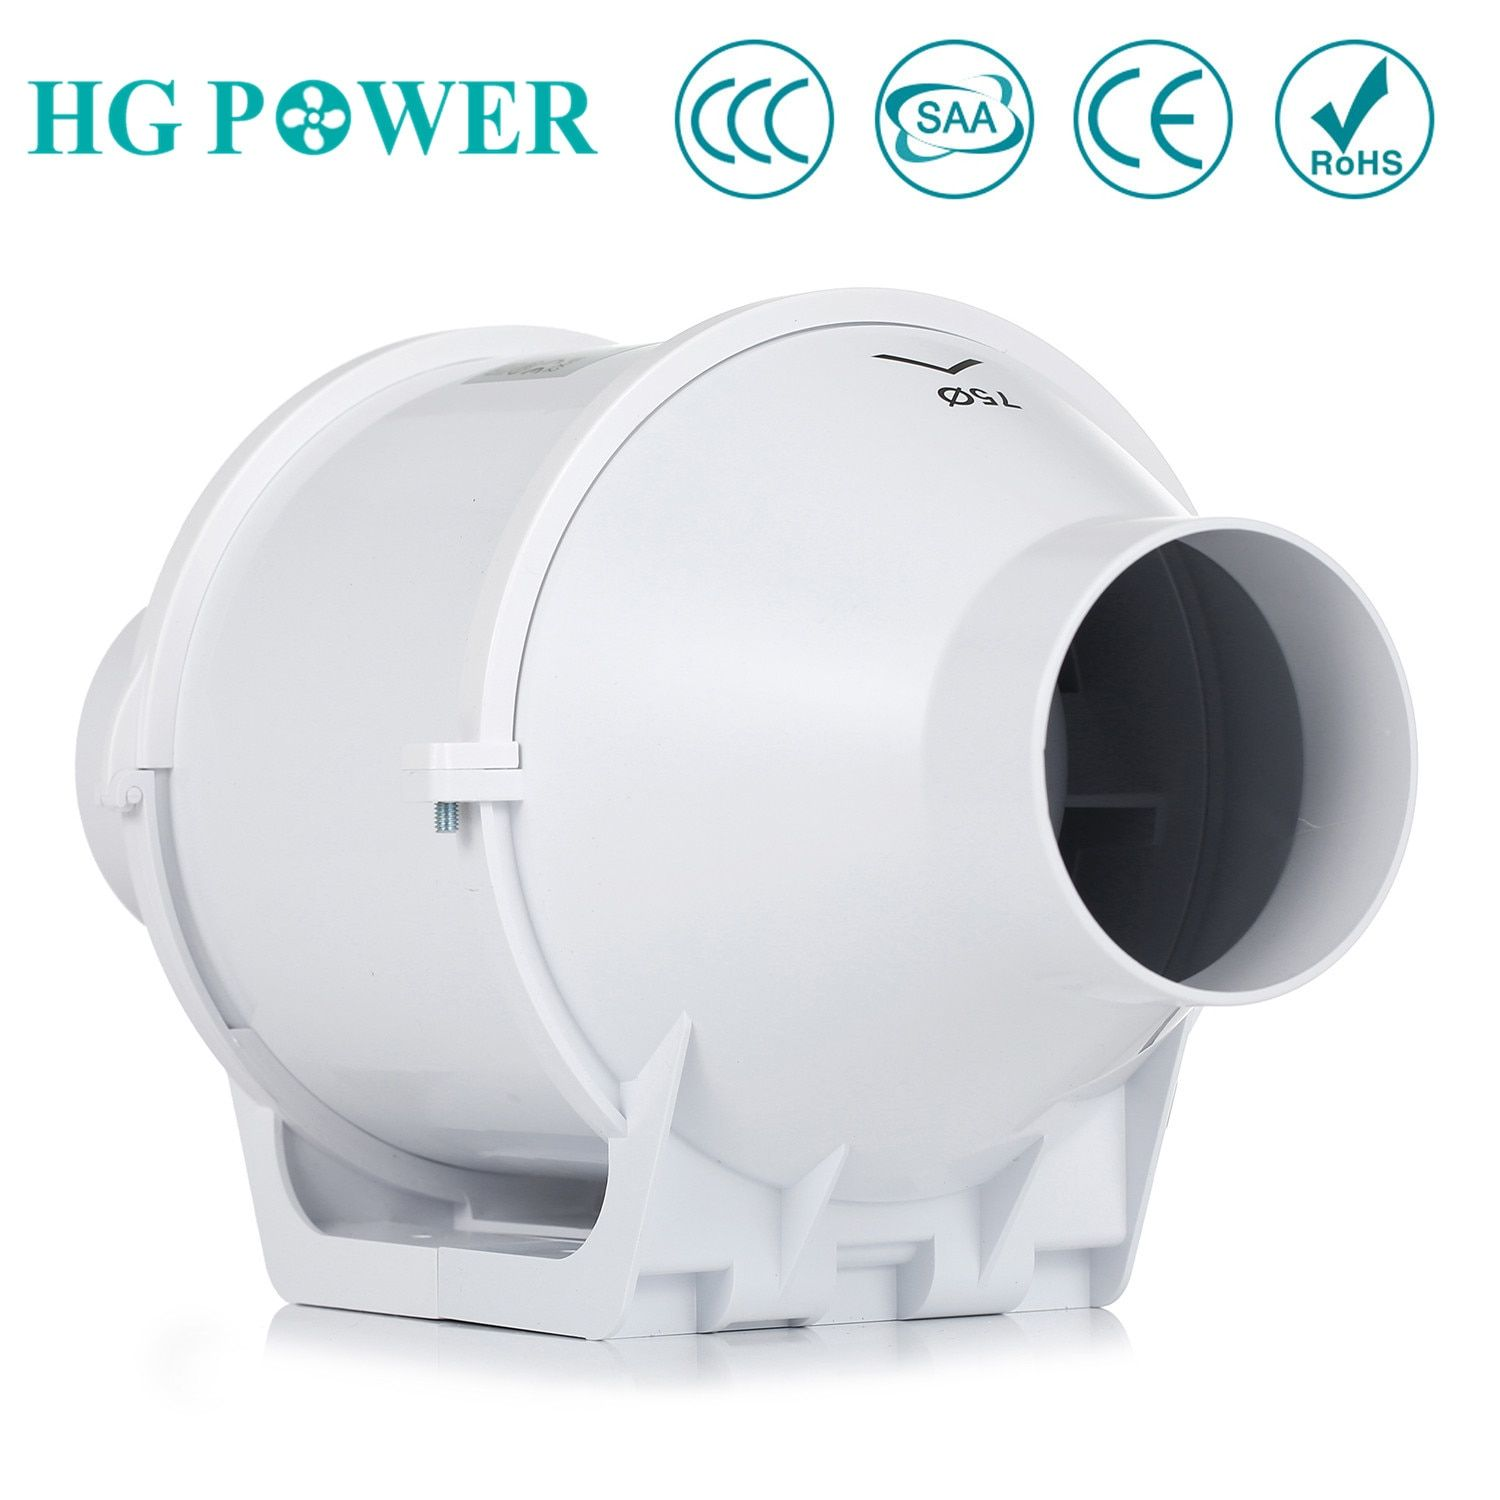 3 75mm Inline Duct Fan Hydroponic Bathroom Extractor Fans Ventilation Blower Exhaust Fan For Kitche Exhaust Fan Kitchen Bathroom Extractor Fan Exhaust Fan